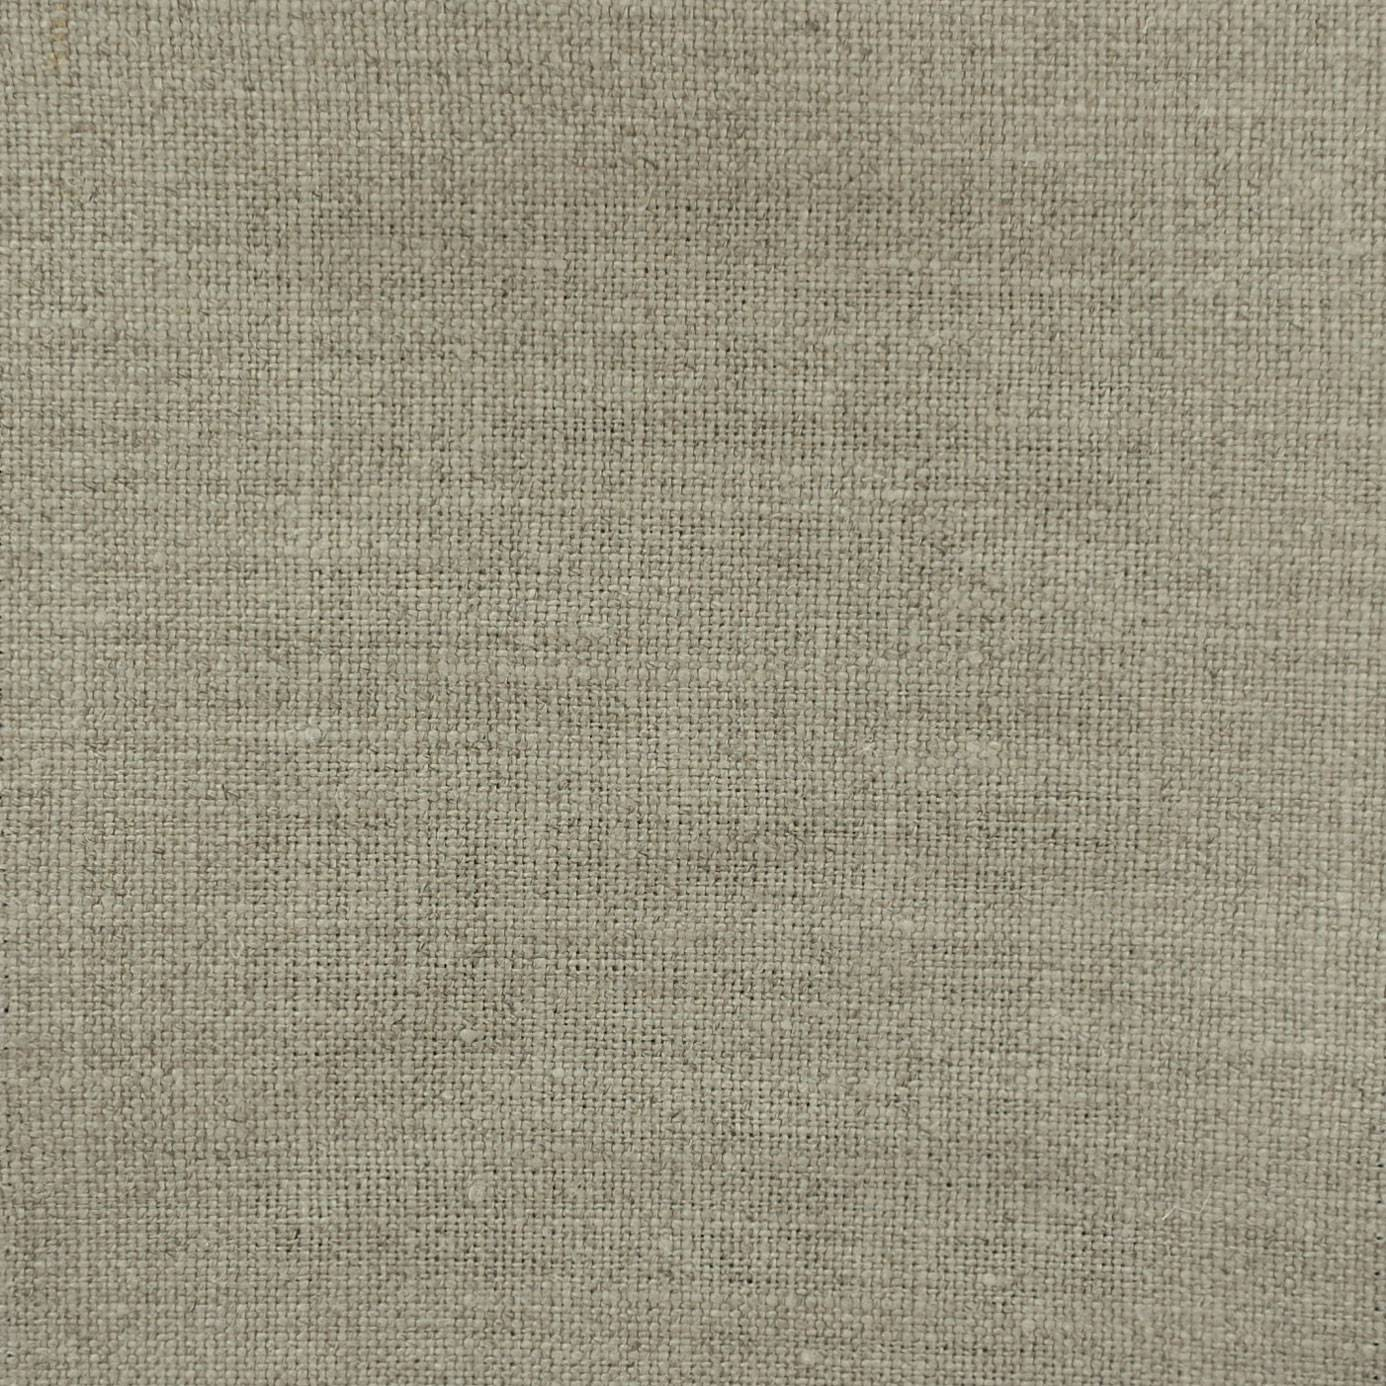 Curtains in launay fabric driftwood 7725 55 romo for Decor 55 fabric